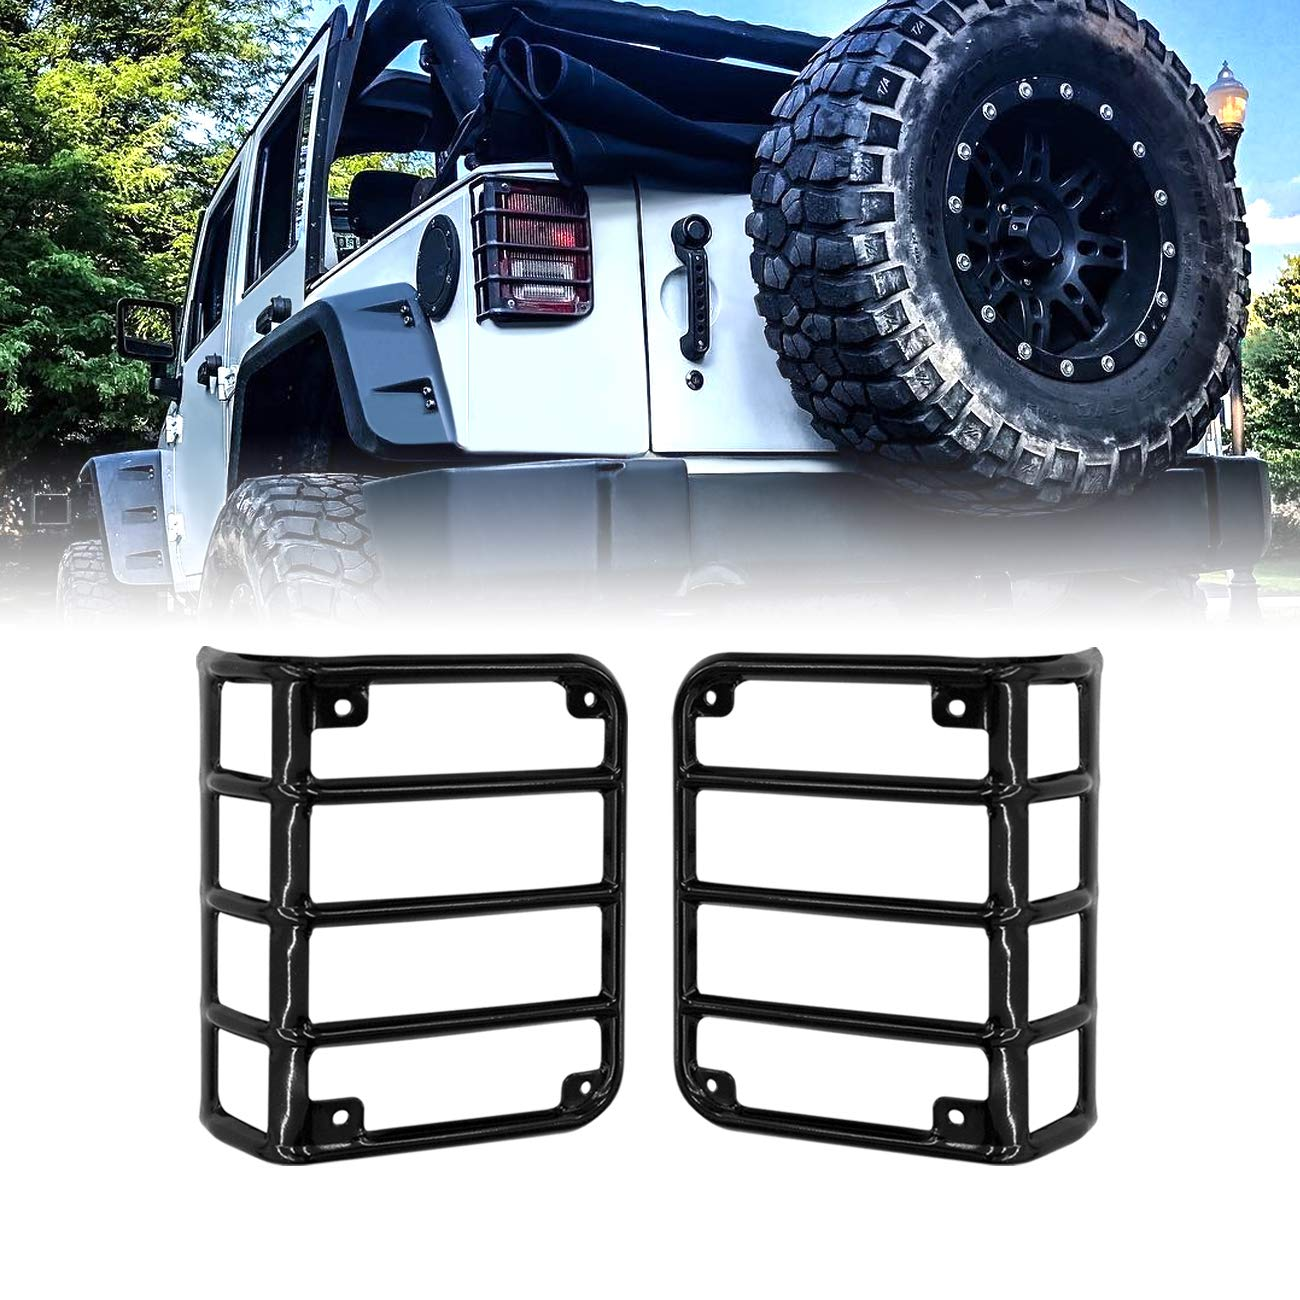 Allinoneparts 2007-2018 JK JKU Jeep Wrangler Tail Lamp Tail light Cover Trim Guards Protector Dog Paw Style for Jeep Wrangler Accessories /& Unlimited Rubicon Sahara Sports Pair